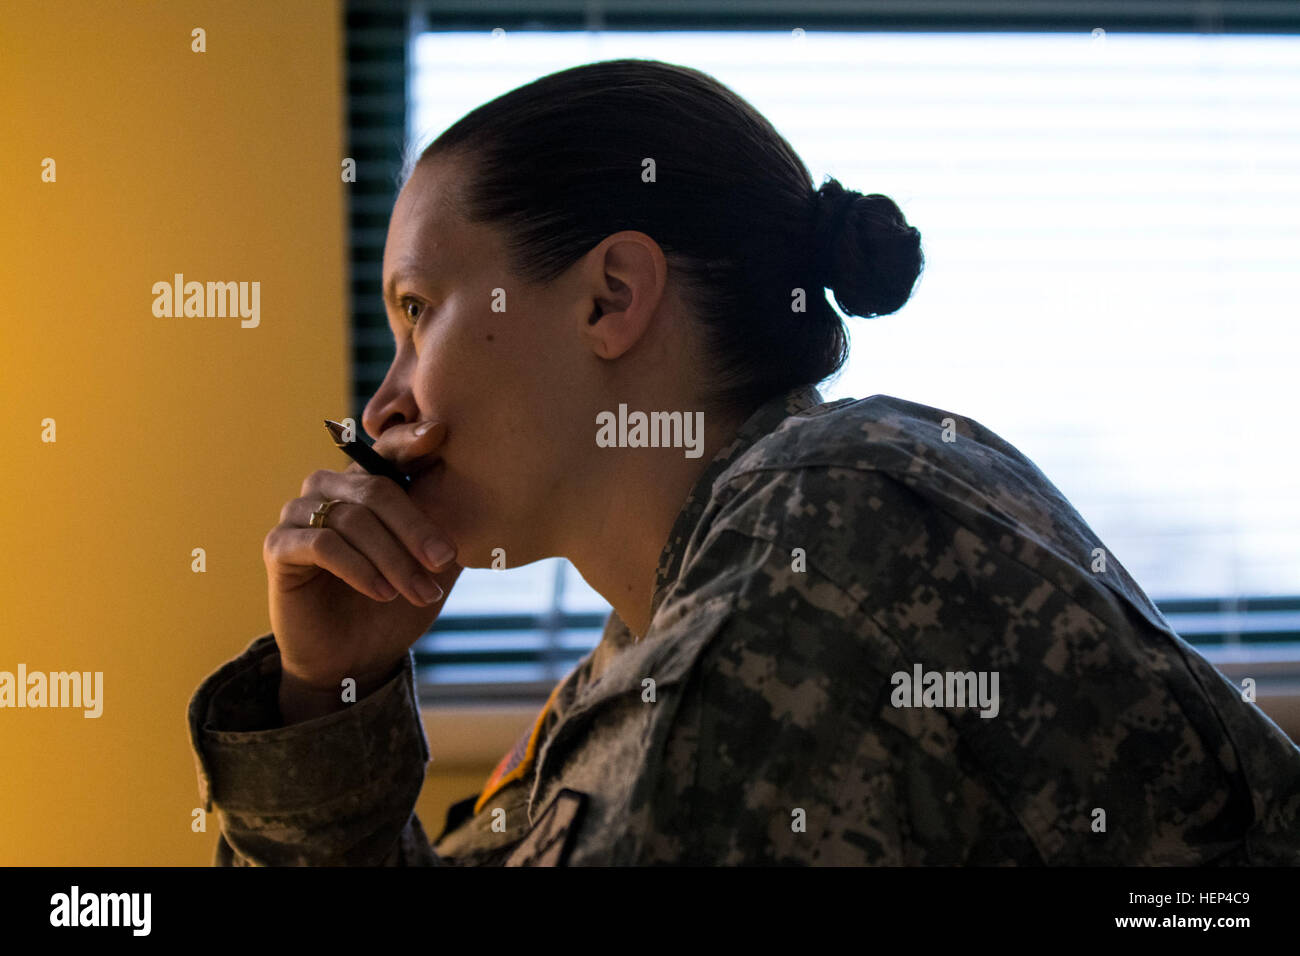 First Sgt. Raquel Steckman is the first woman in the Army appointed to a combat engineer company as a first sergeant, Stock Photo